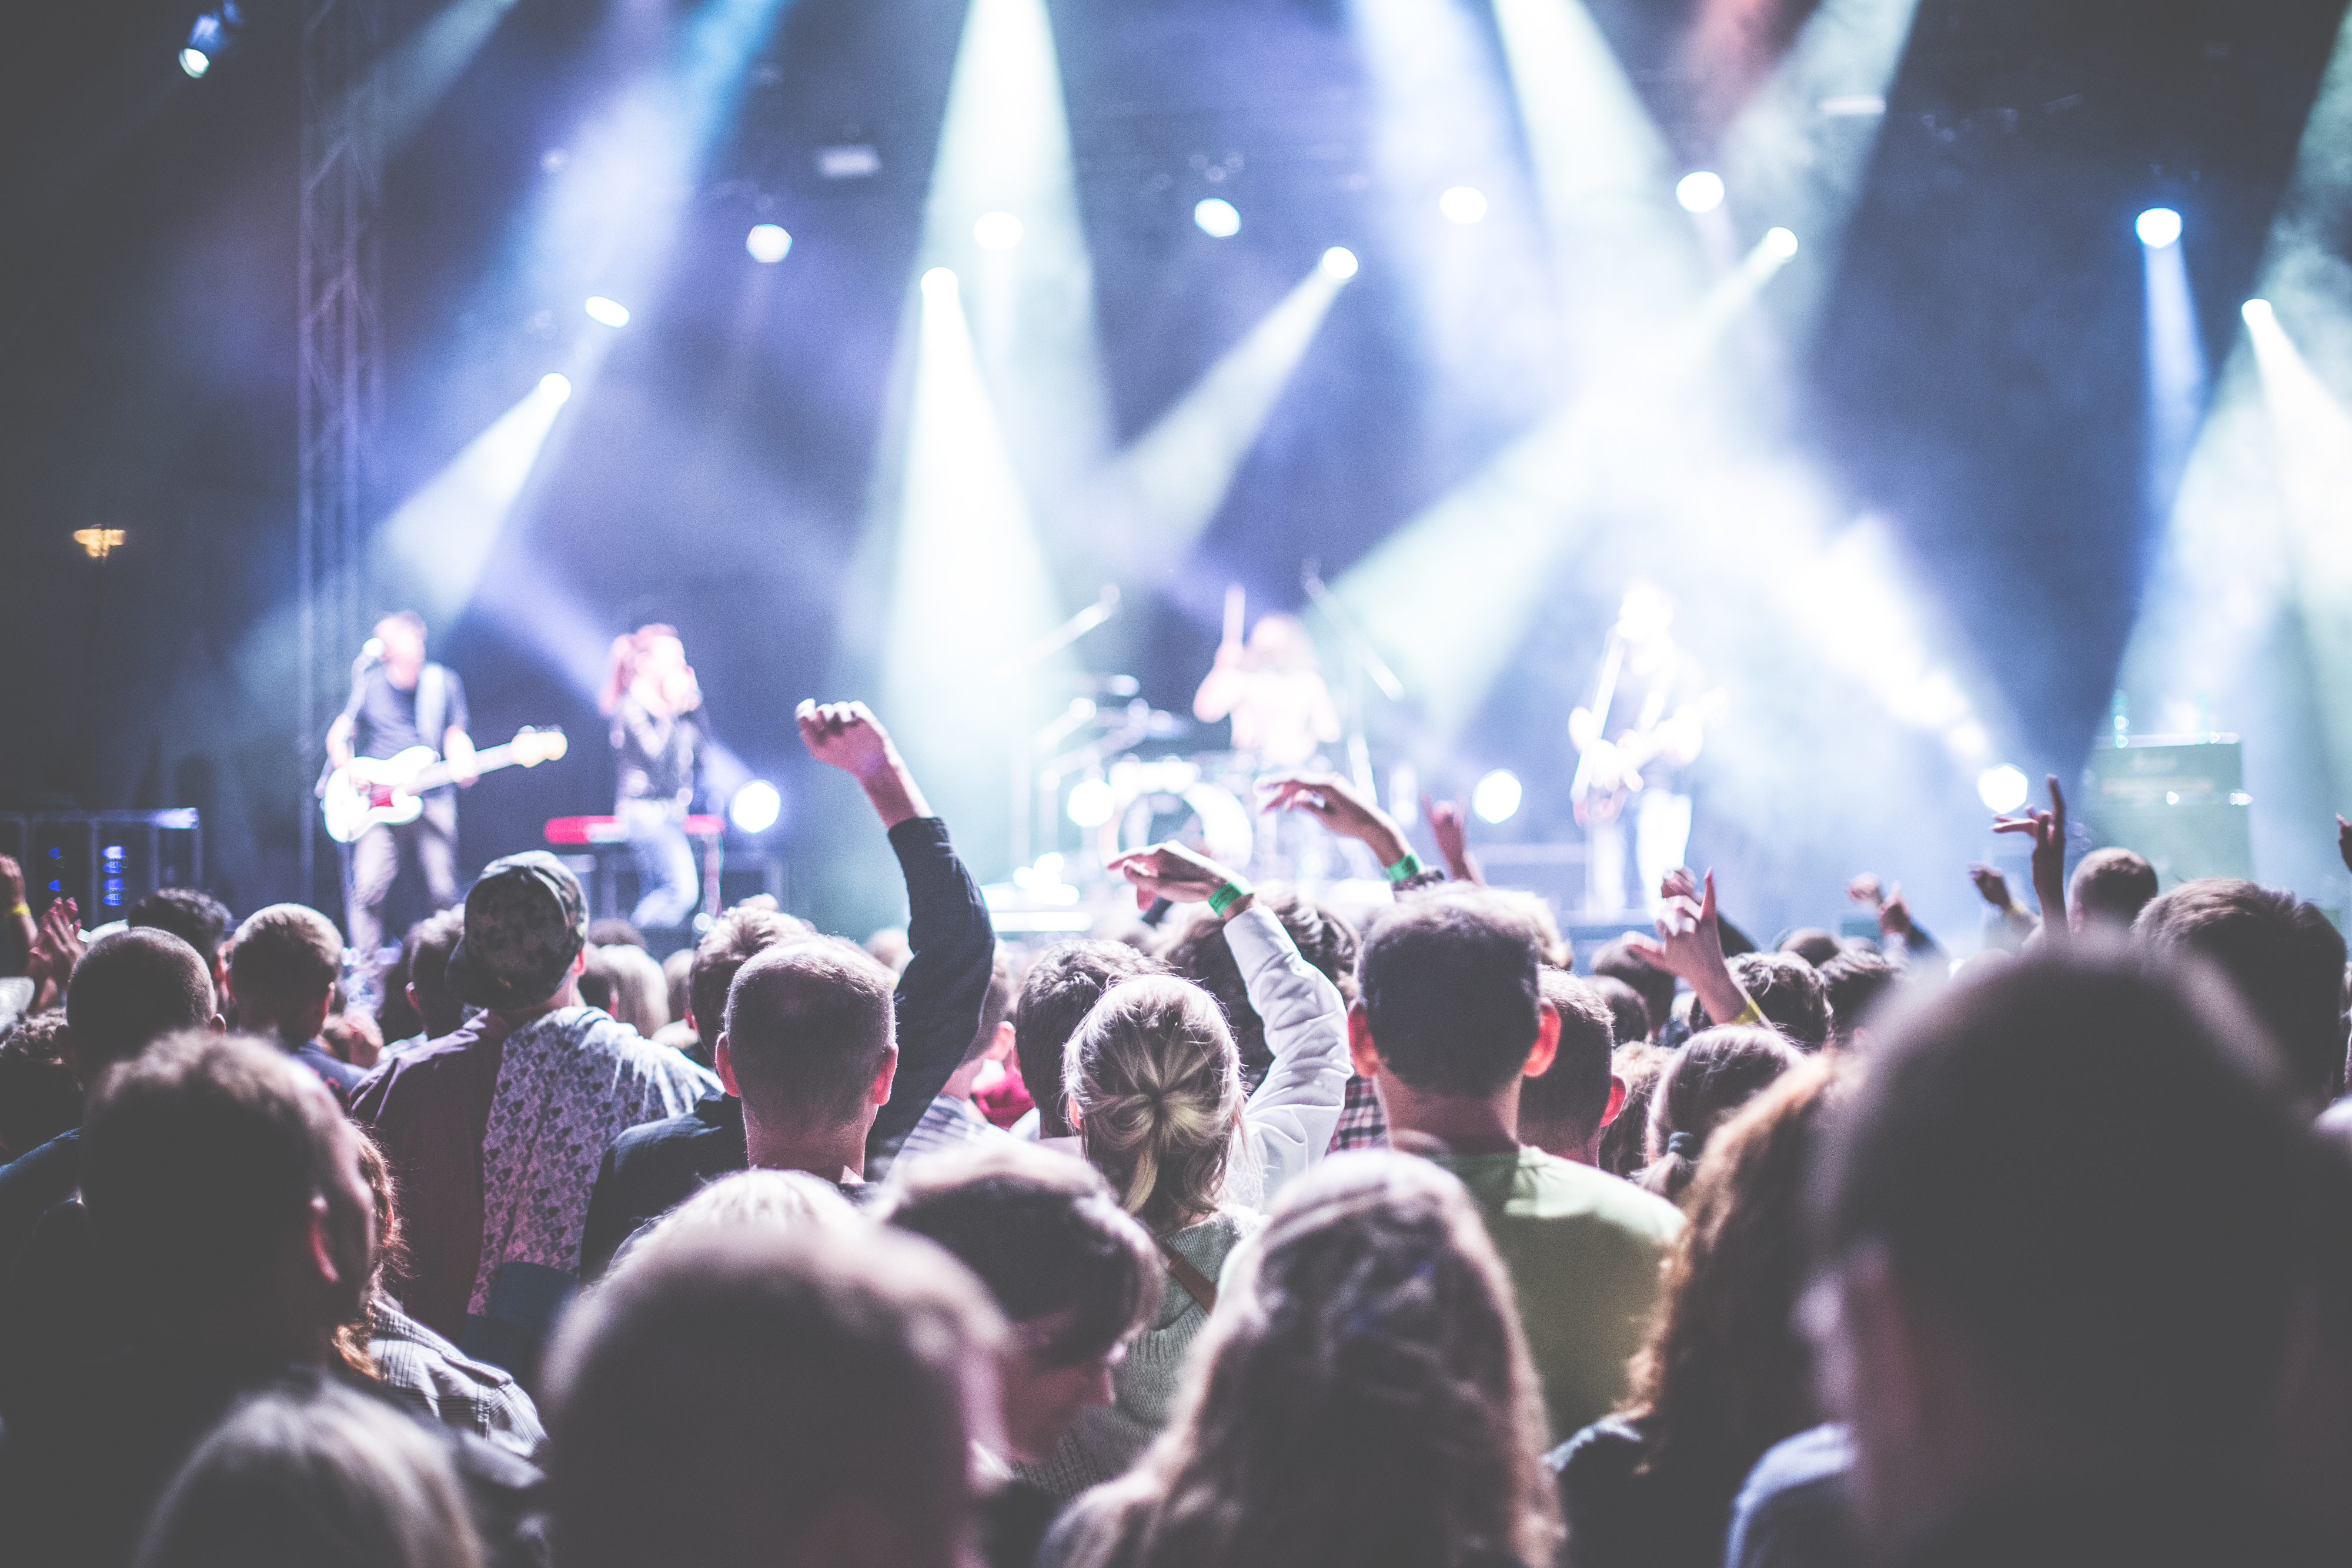 250  Engaging Concert Photos      Pexels      Free Stock Photos Crowd in Front of People Playing Musical Instrument during Nighttime